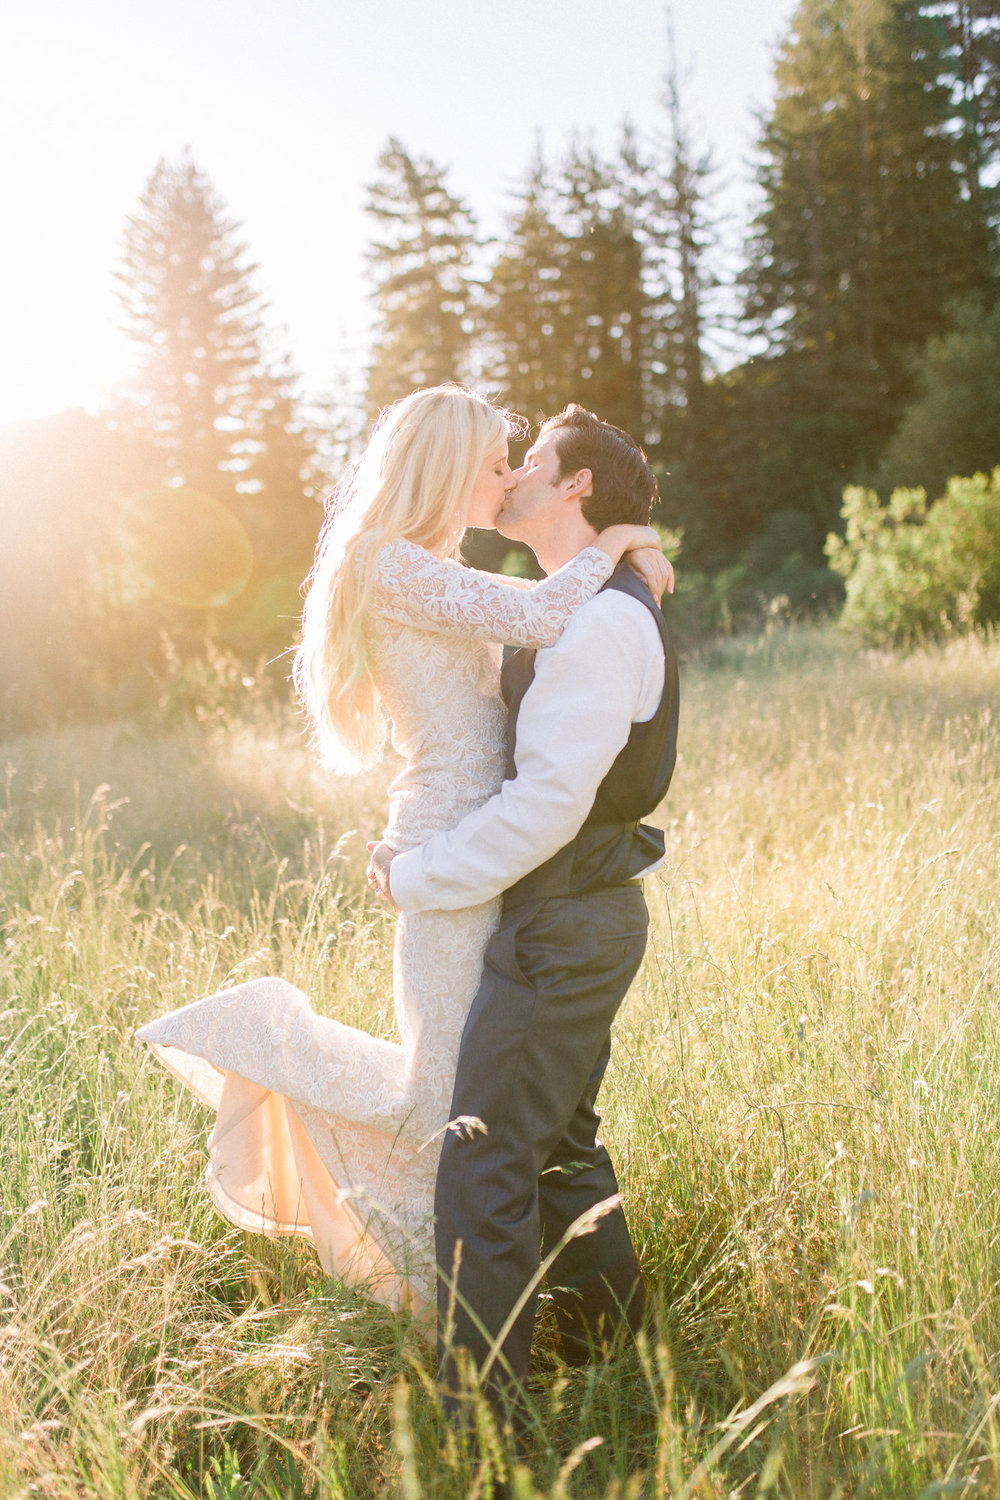 groom being playful with bride in lace long sleeve white wedding gown in grassy field during golden hour kim baker beauty san jose california makeup artist